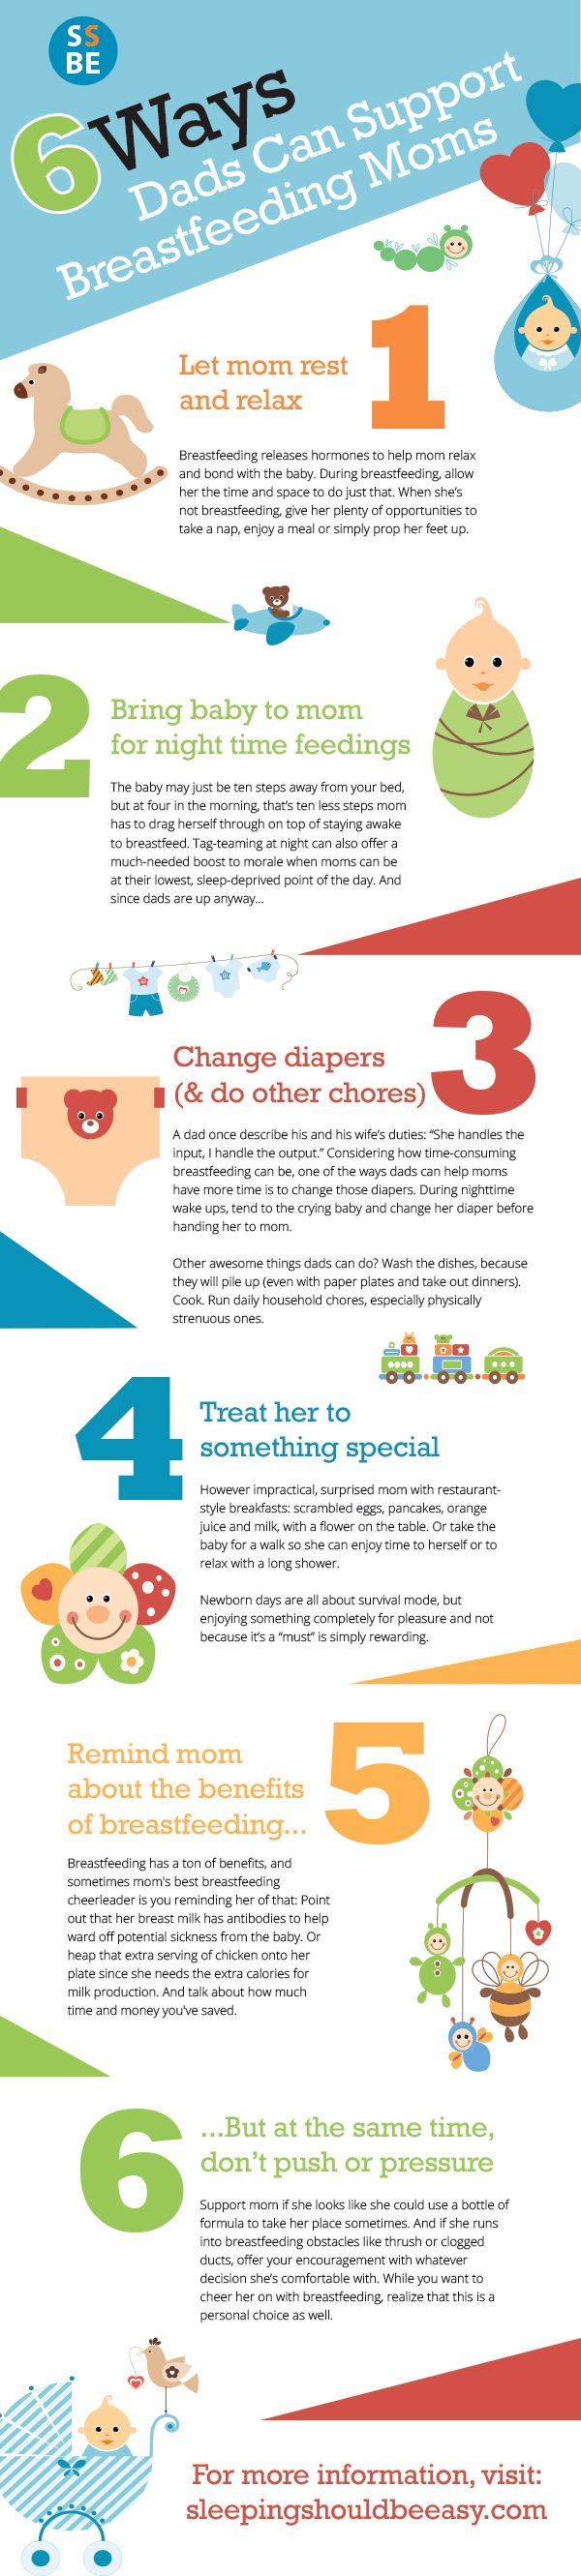 Mom may be breastfeeding, but there are many ways for dad to offer breast feeding support too. Here are 6 ways dads can support breastfeeding mothers, from cheering her on to helping to keep a milk supply for baby. Comes with a free download. Perfect for every nursing mom!